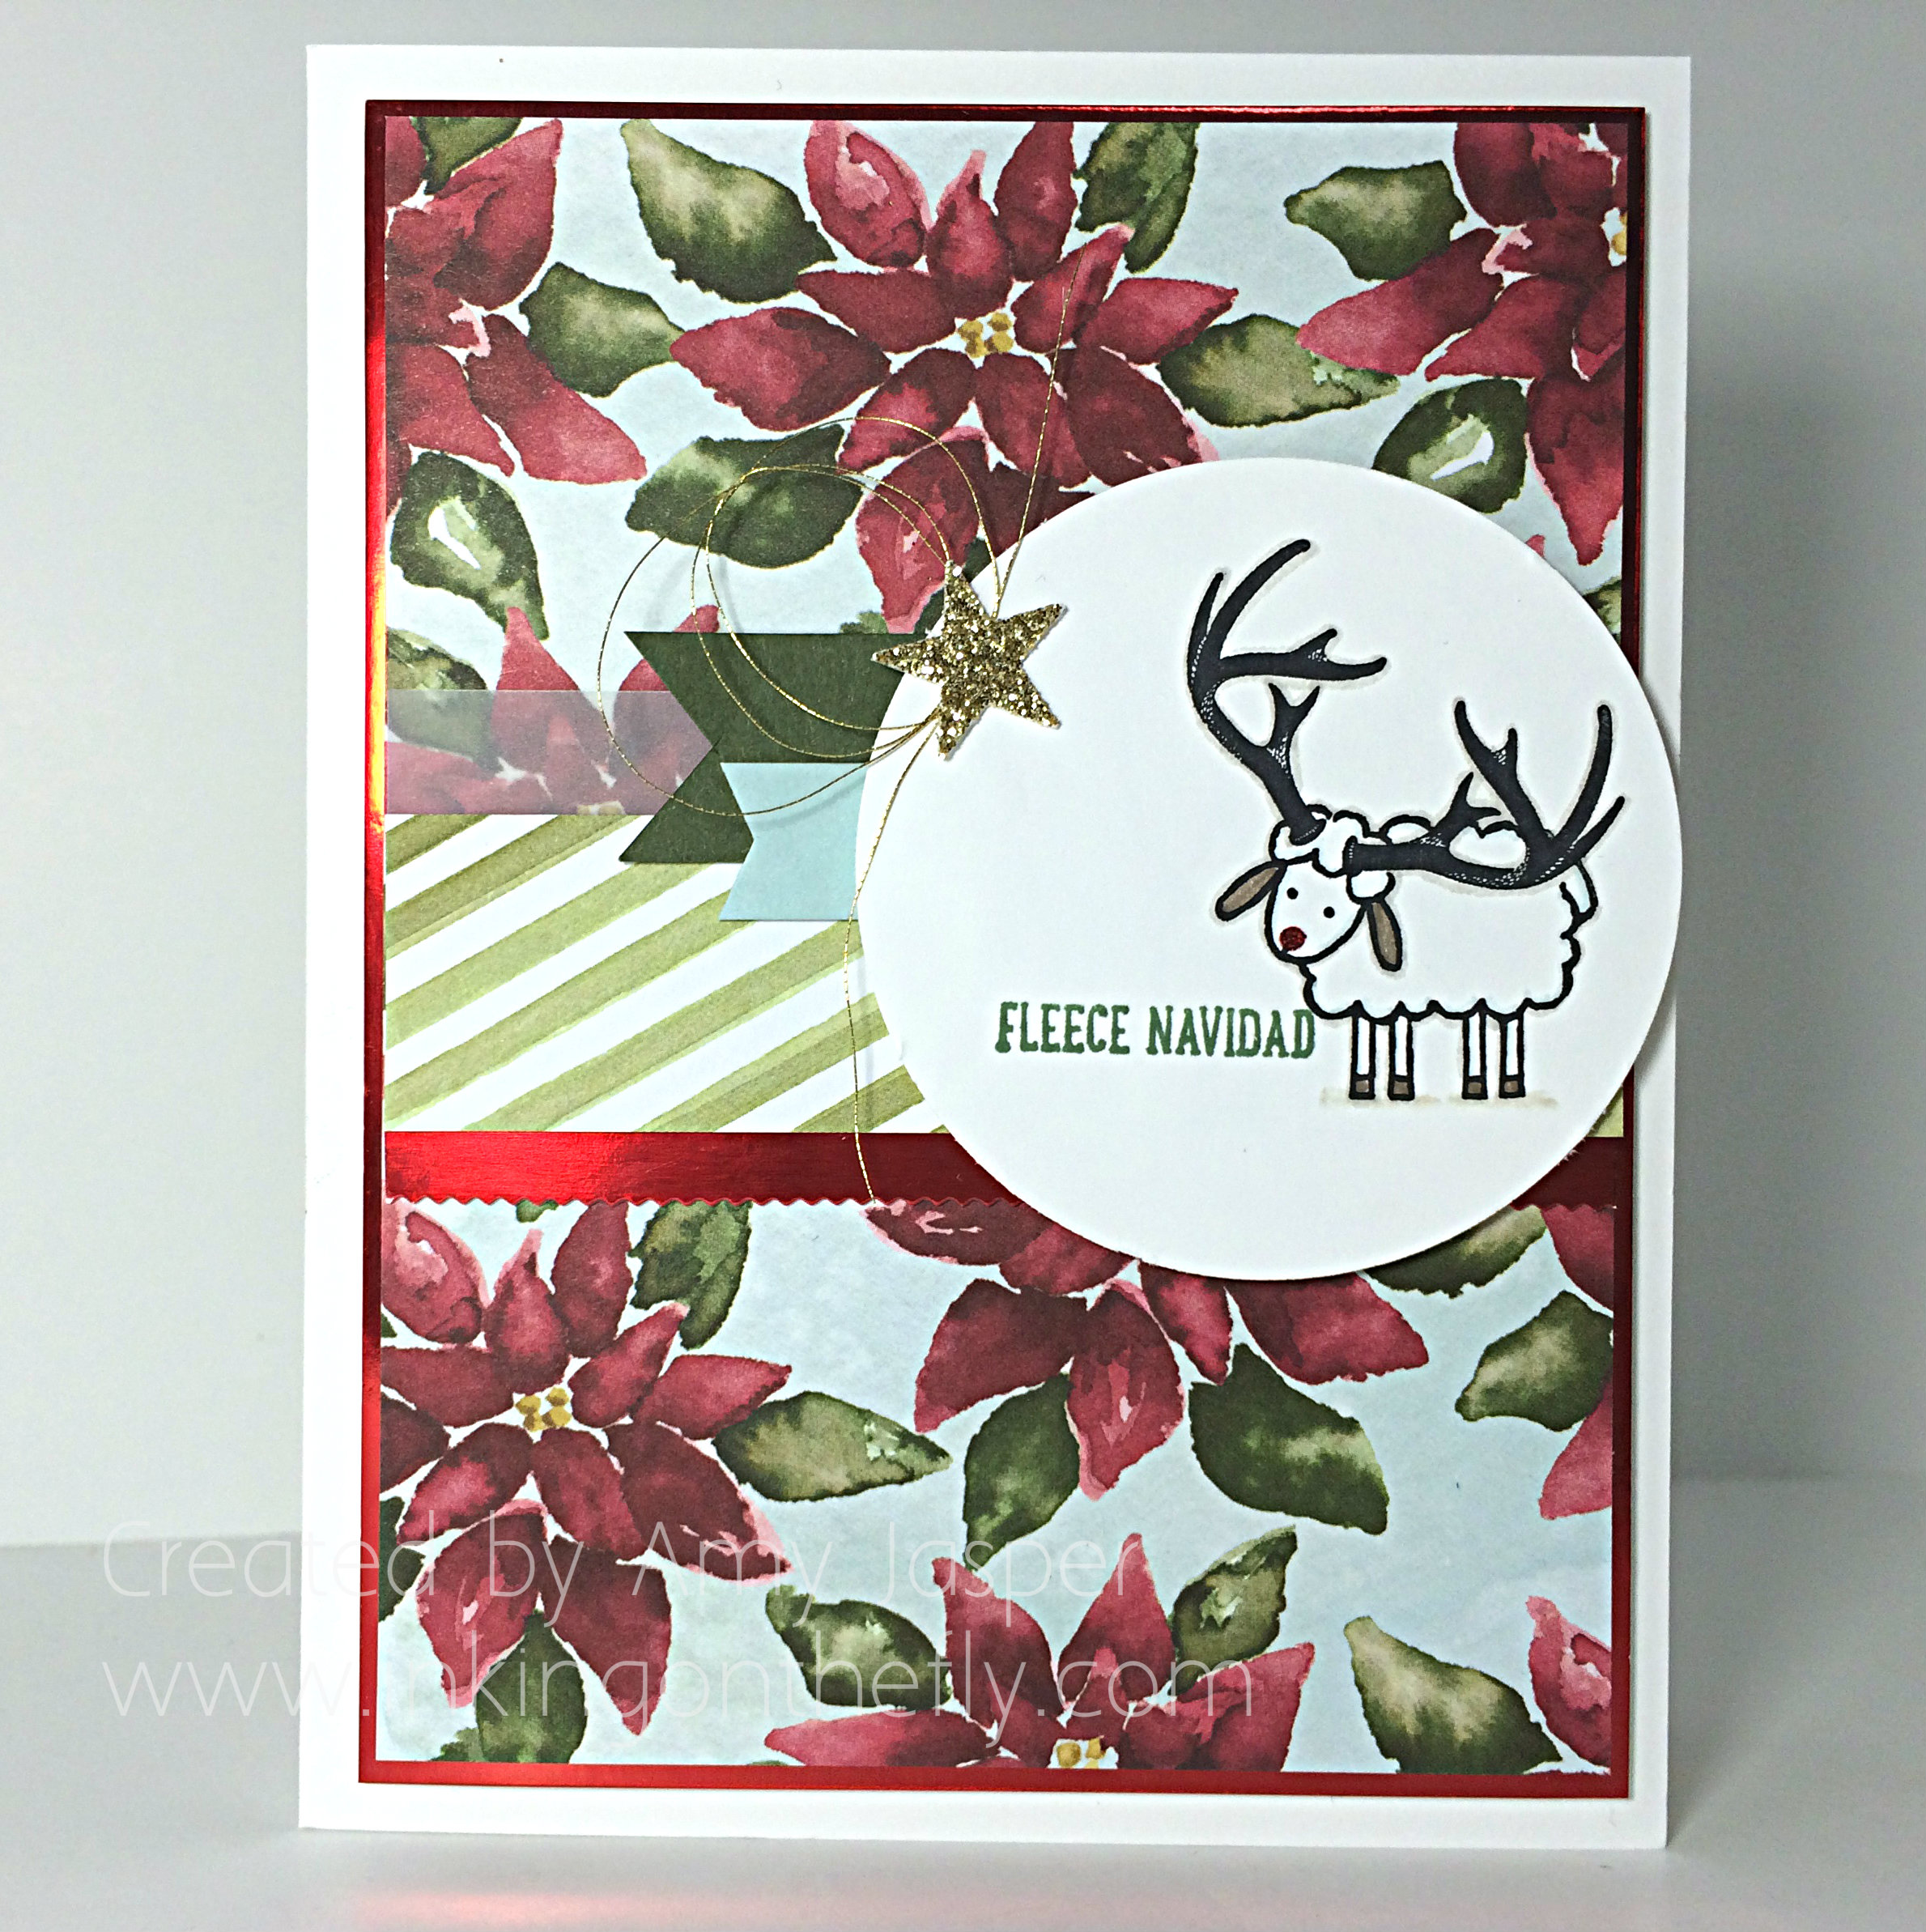 Fleece Navidad card created by Amy Jasper at www.inkingonthefly.com